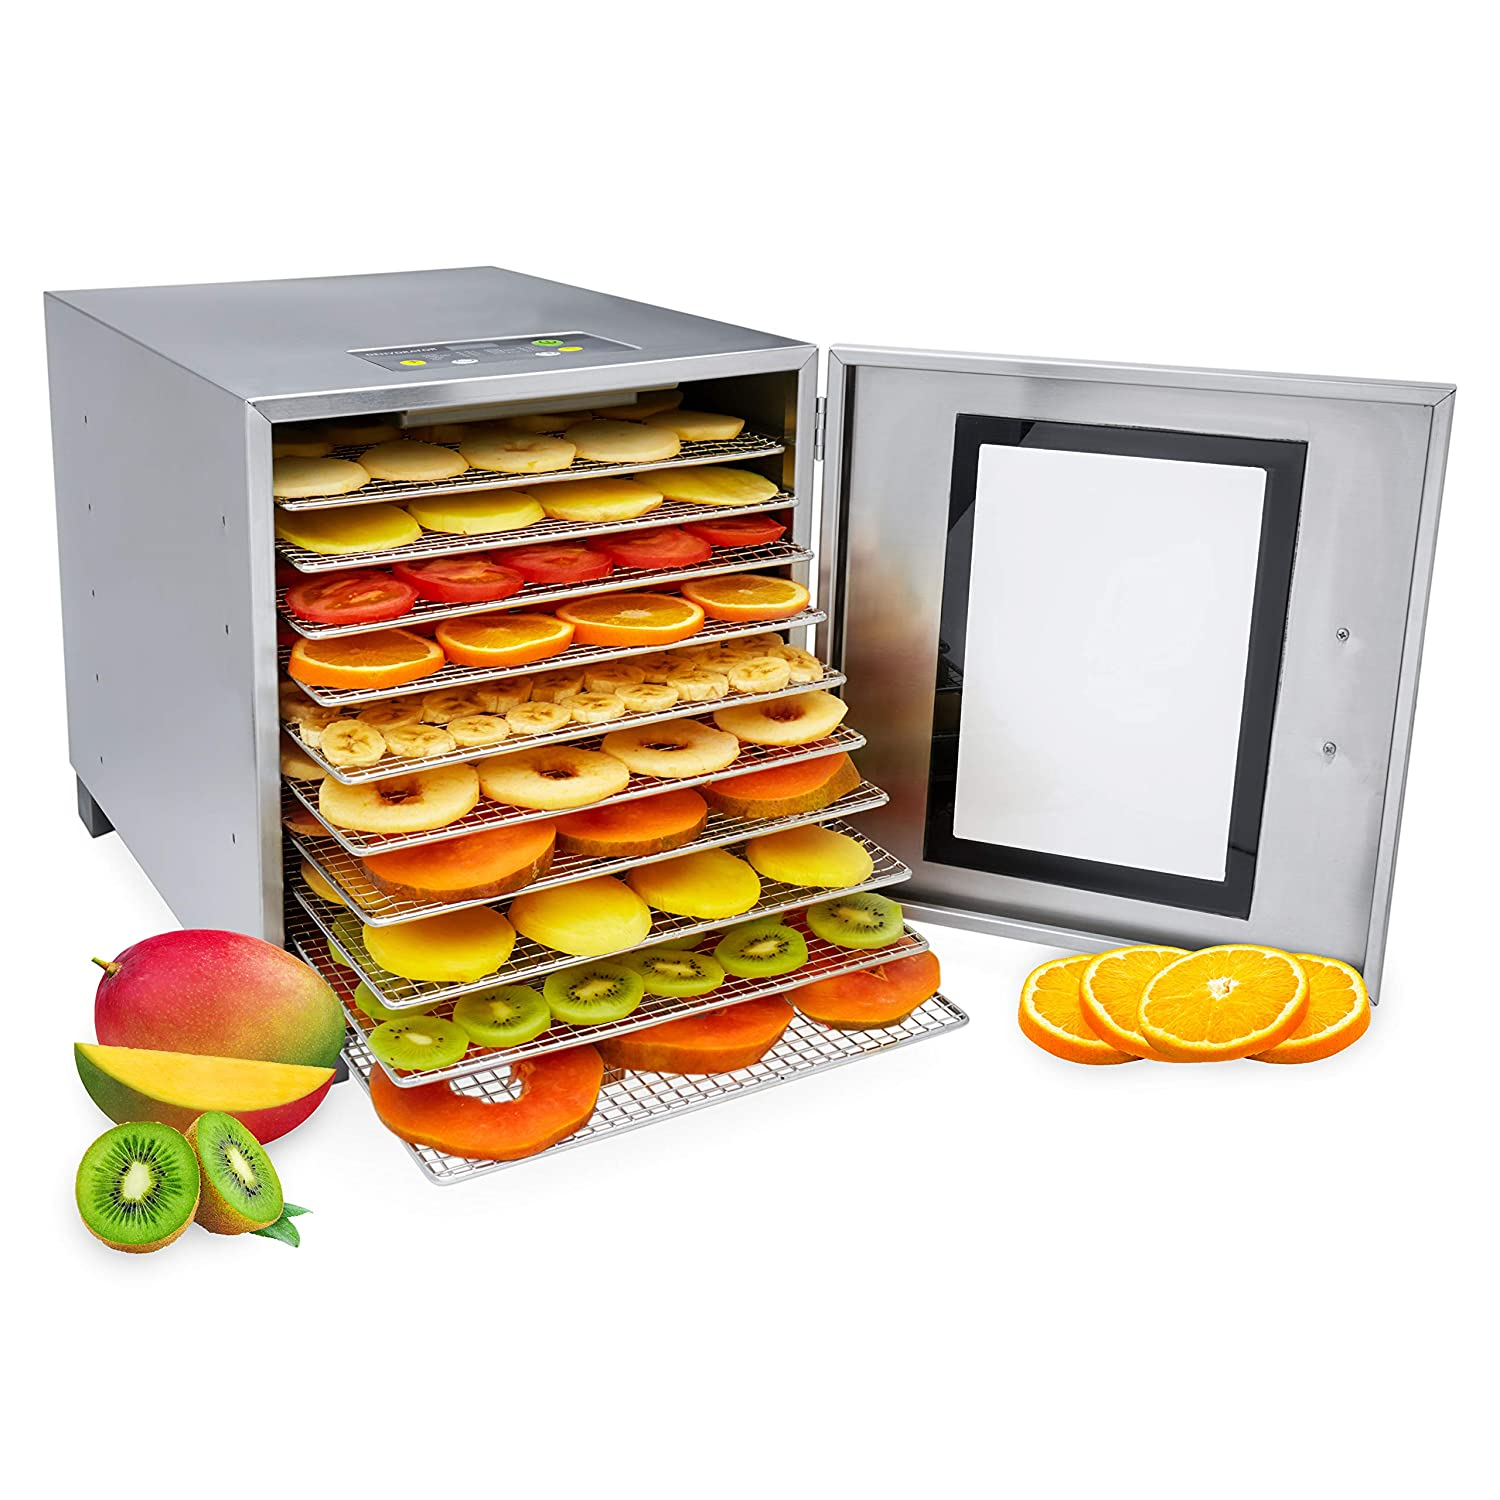 Morvat Stainless Steel Food Dehydrator Machine, Make Fruit Leather, Jerky, Dried Fruits and Veggies and More, Fruit and Meat Dehydrator, 10 Stainless Steel Trays (Dishwasher Safe)